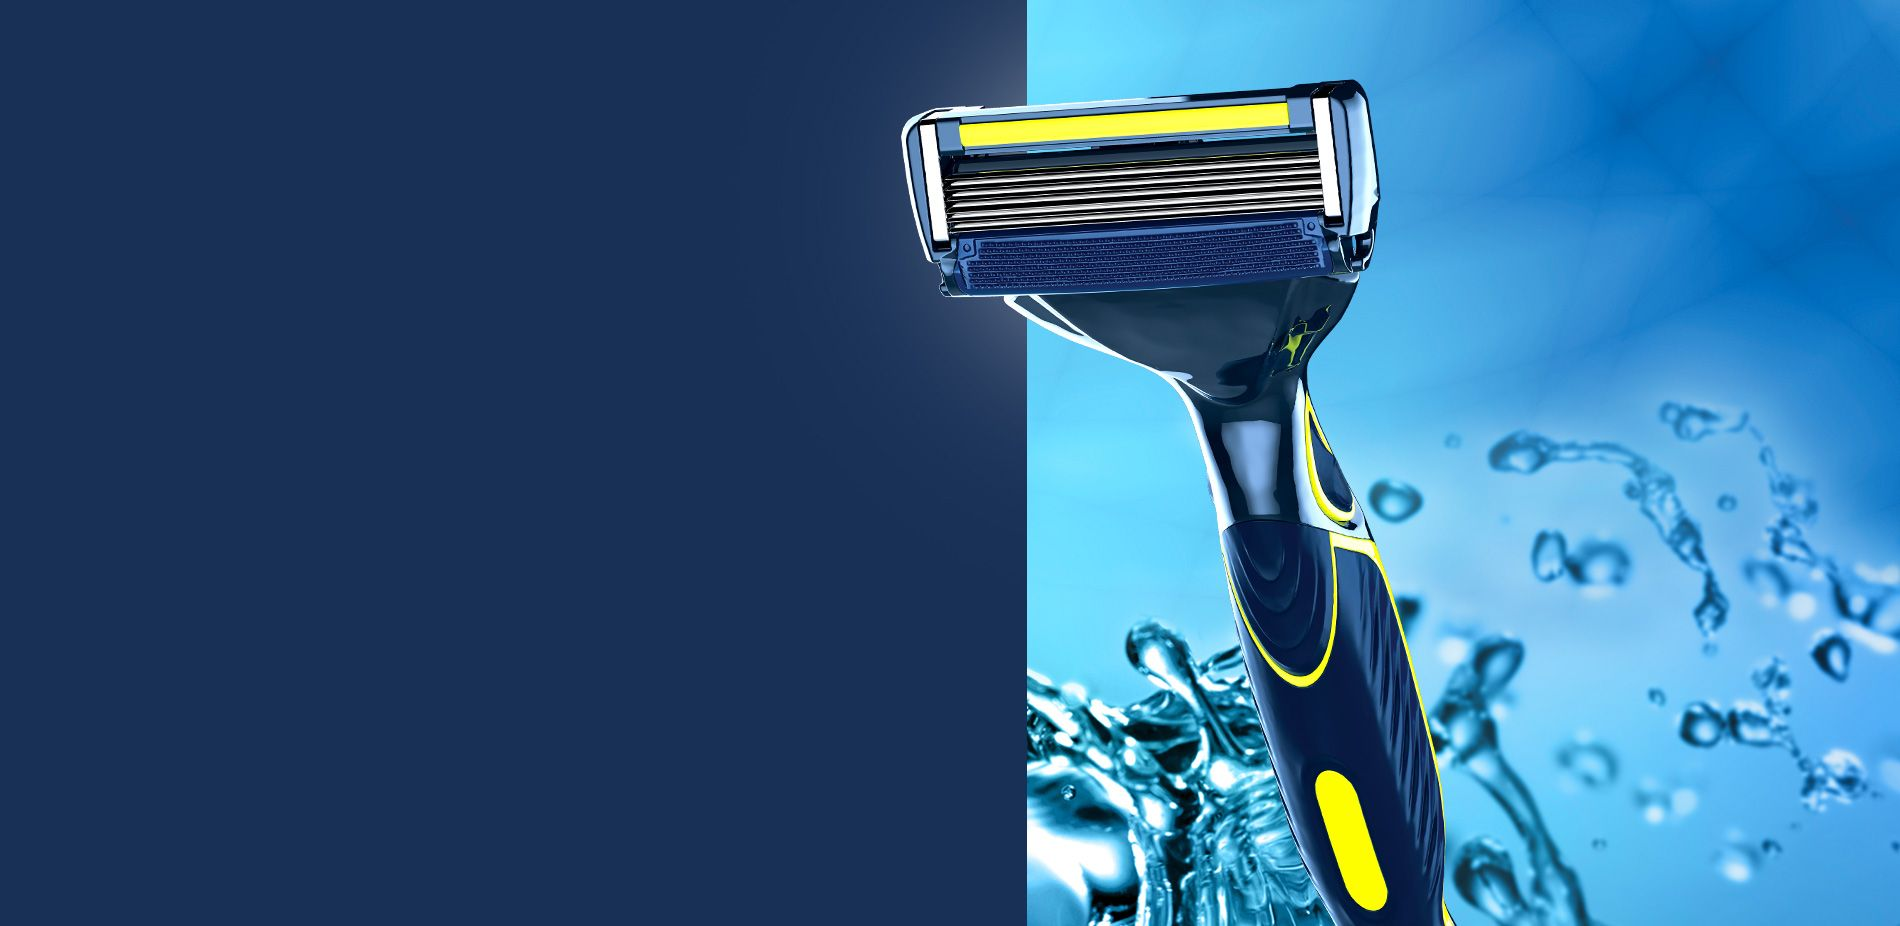 Free Simply Right Duraglide 6 Razor & Cartridge for Sam's Club Members.  Click the get a sample button. Sam's Club membership number required